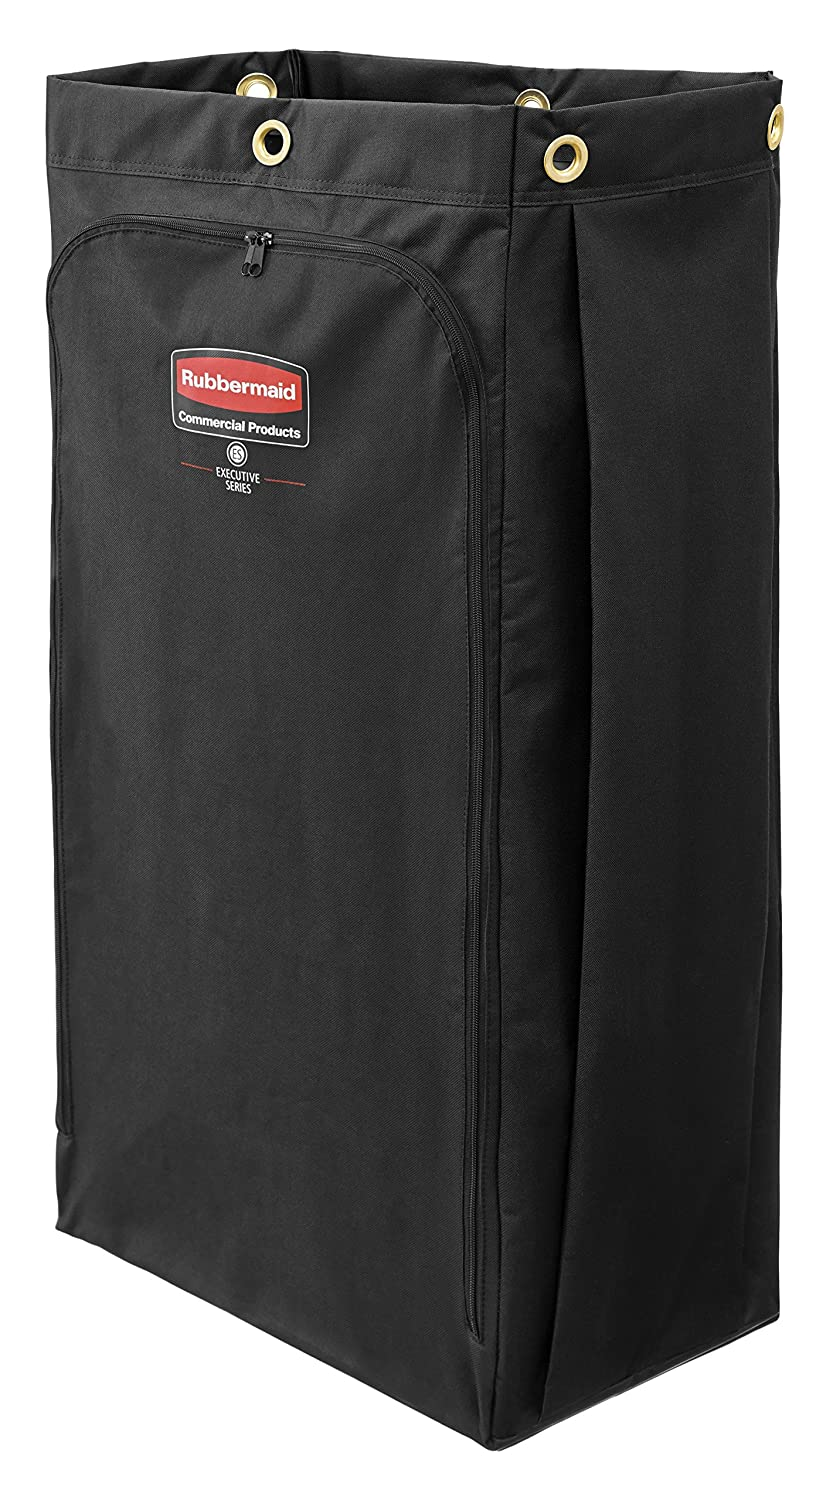 Rubbermaid Commercial Executive Series High Capacity Cleaning Cart Bag, 30 Gallon, Black, 1966888